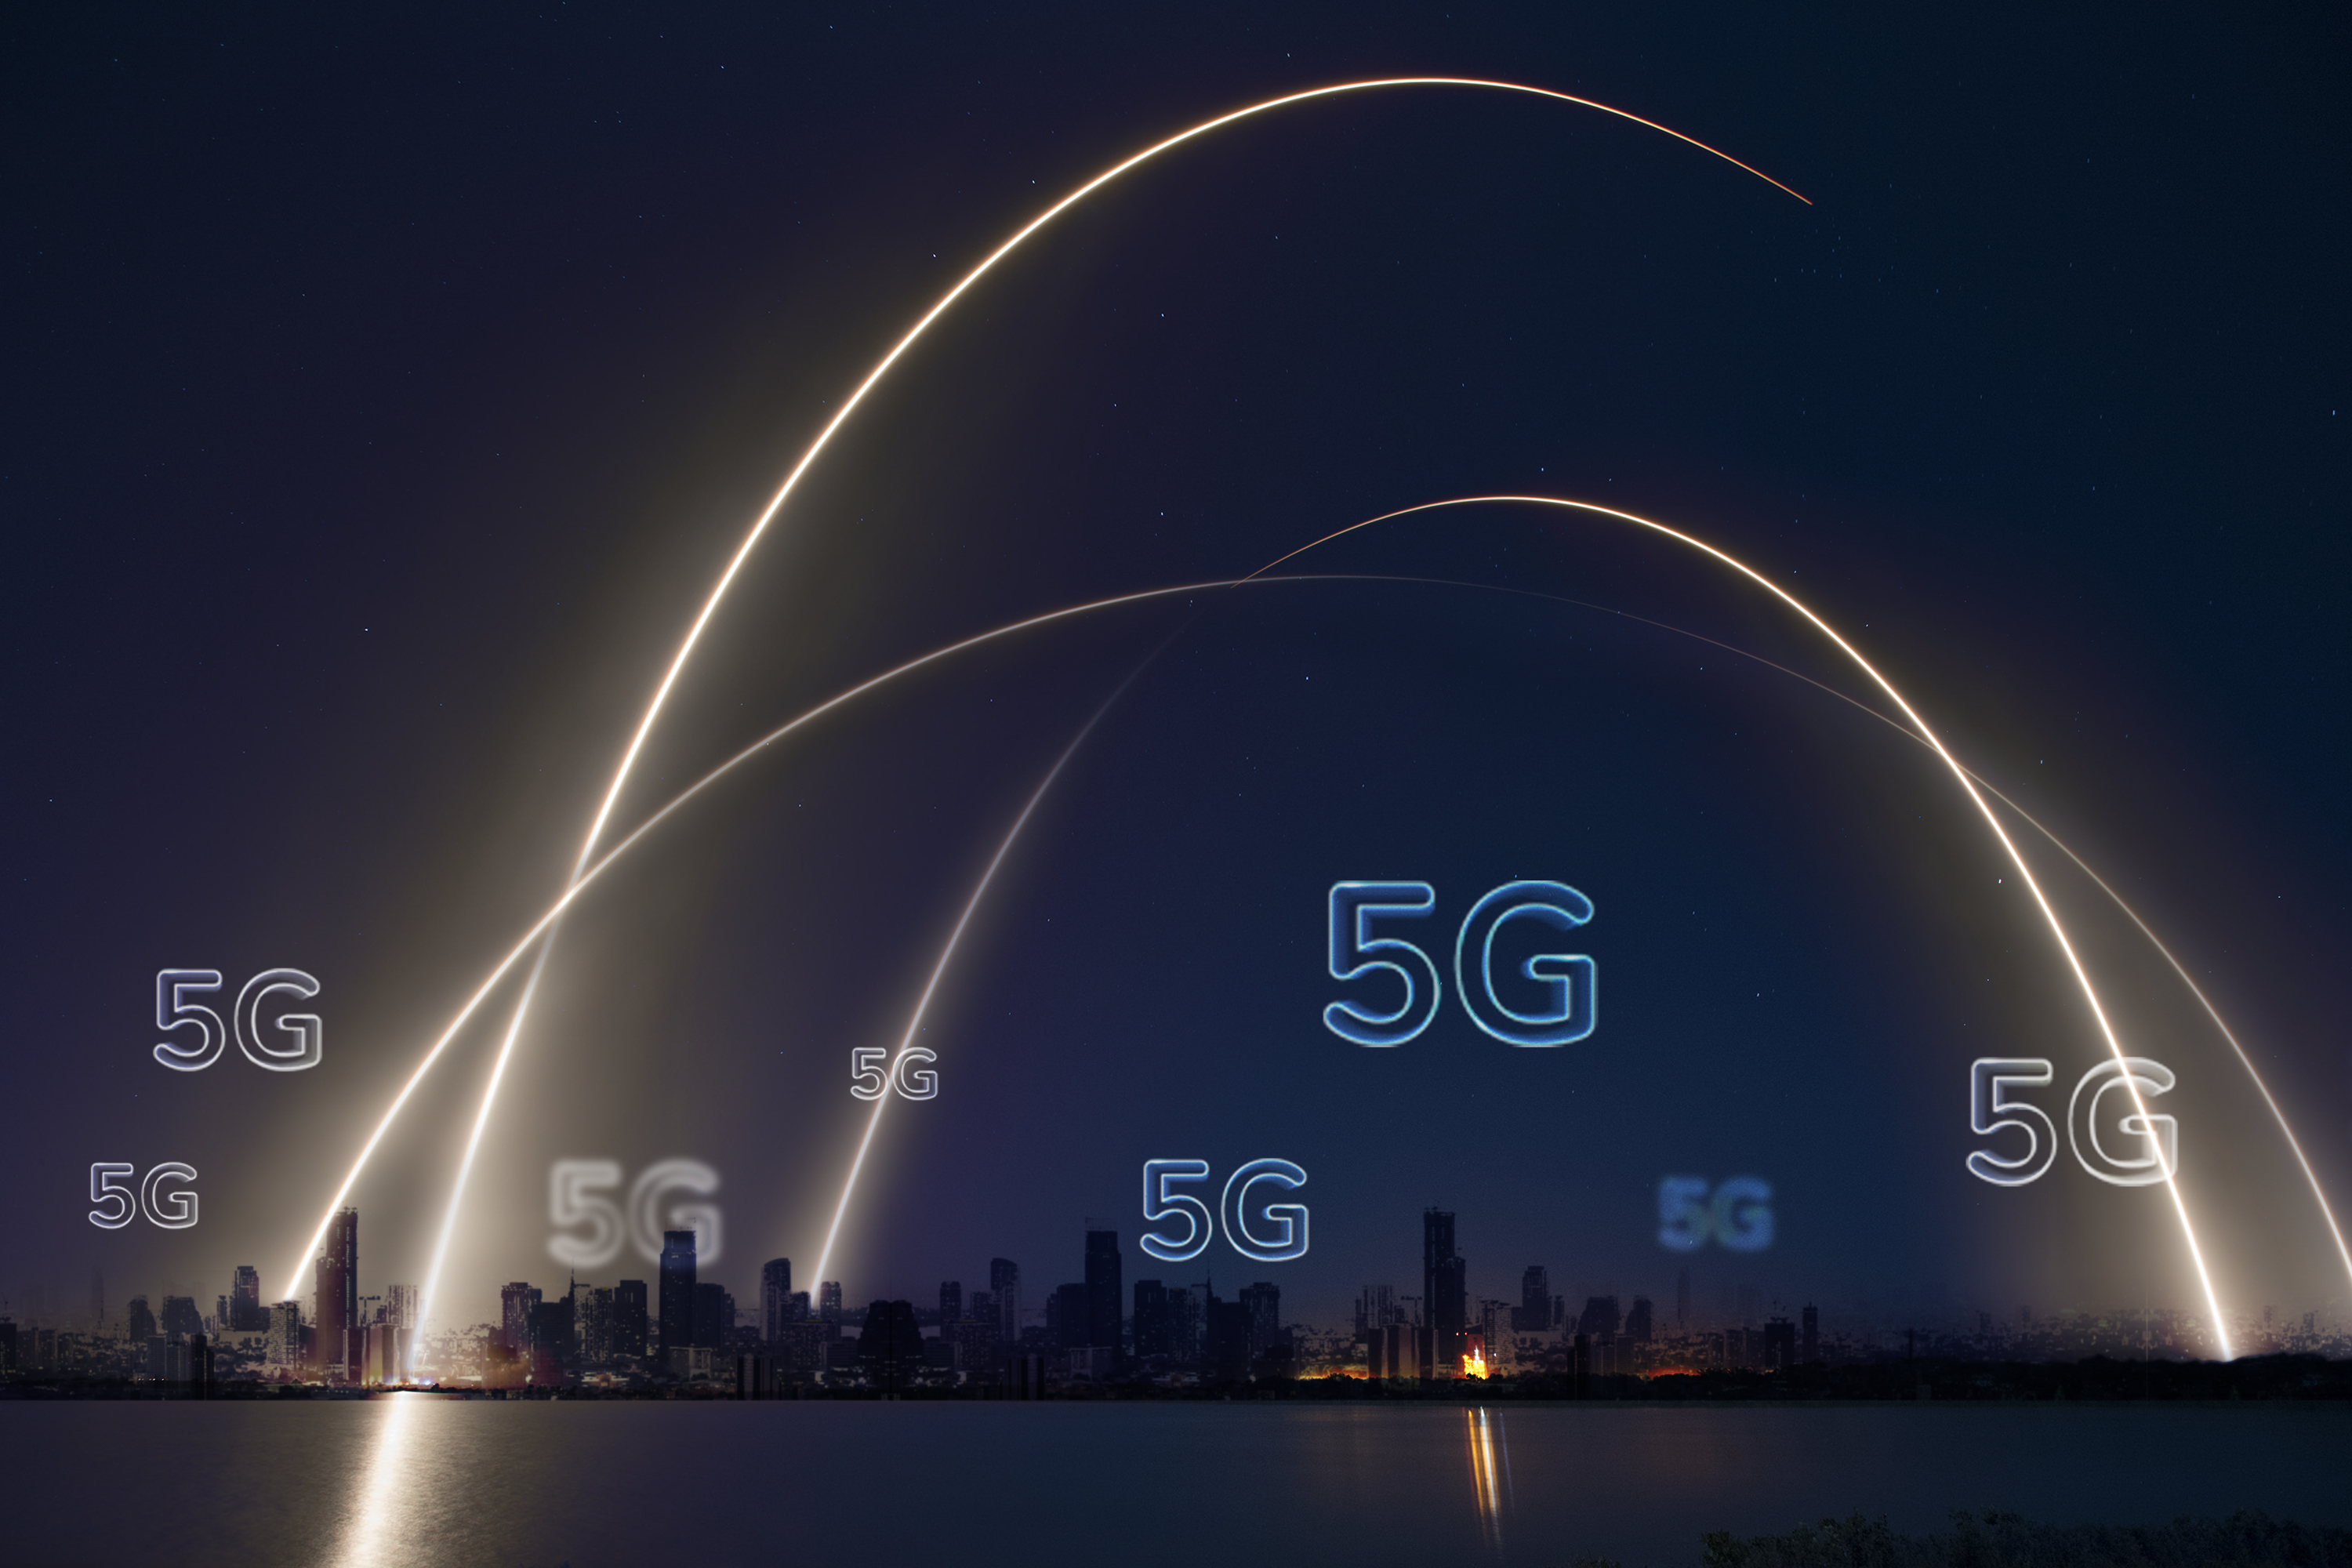 Escalating the IoT (Internet of Things) with 5G network technologies.